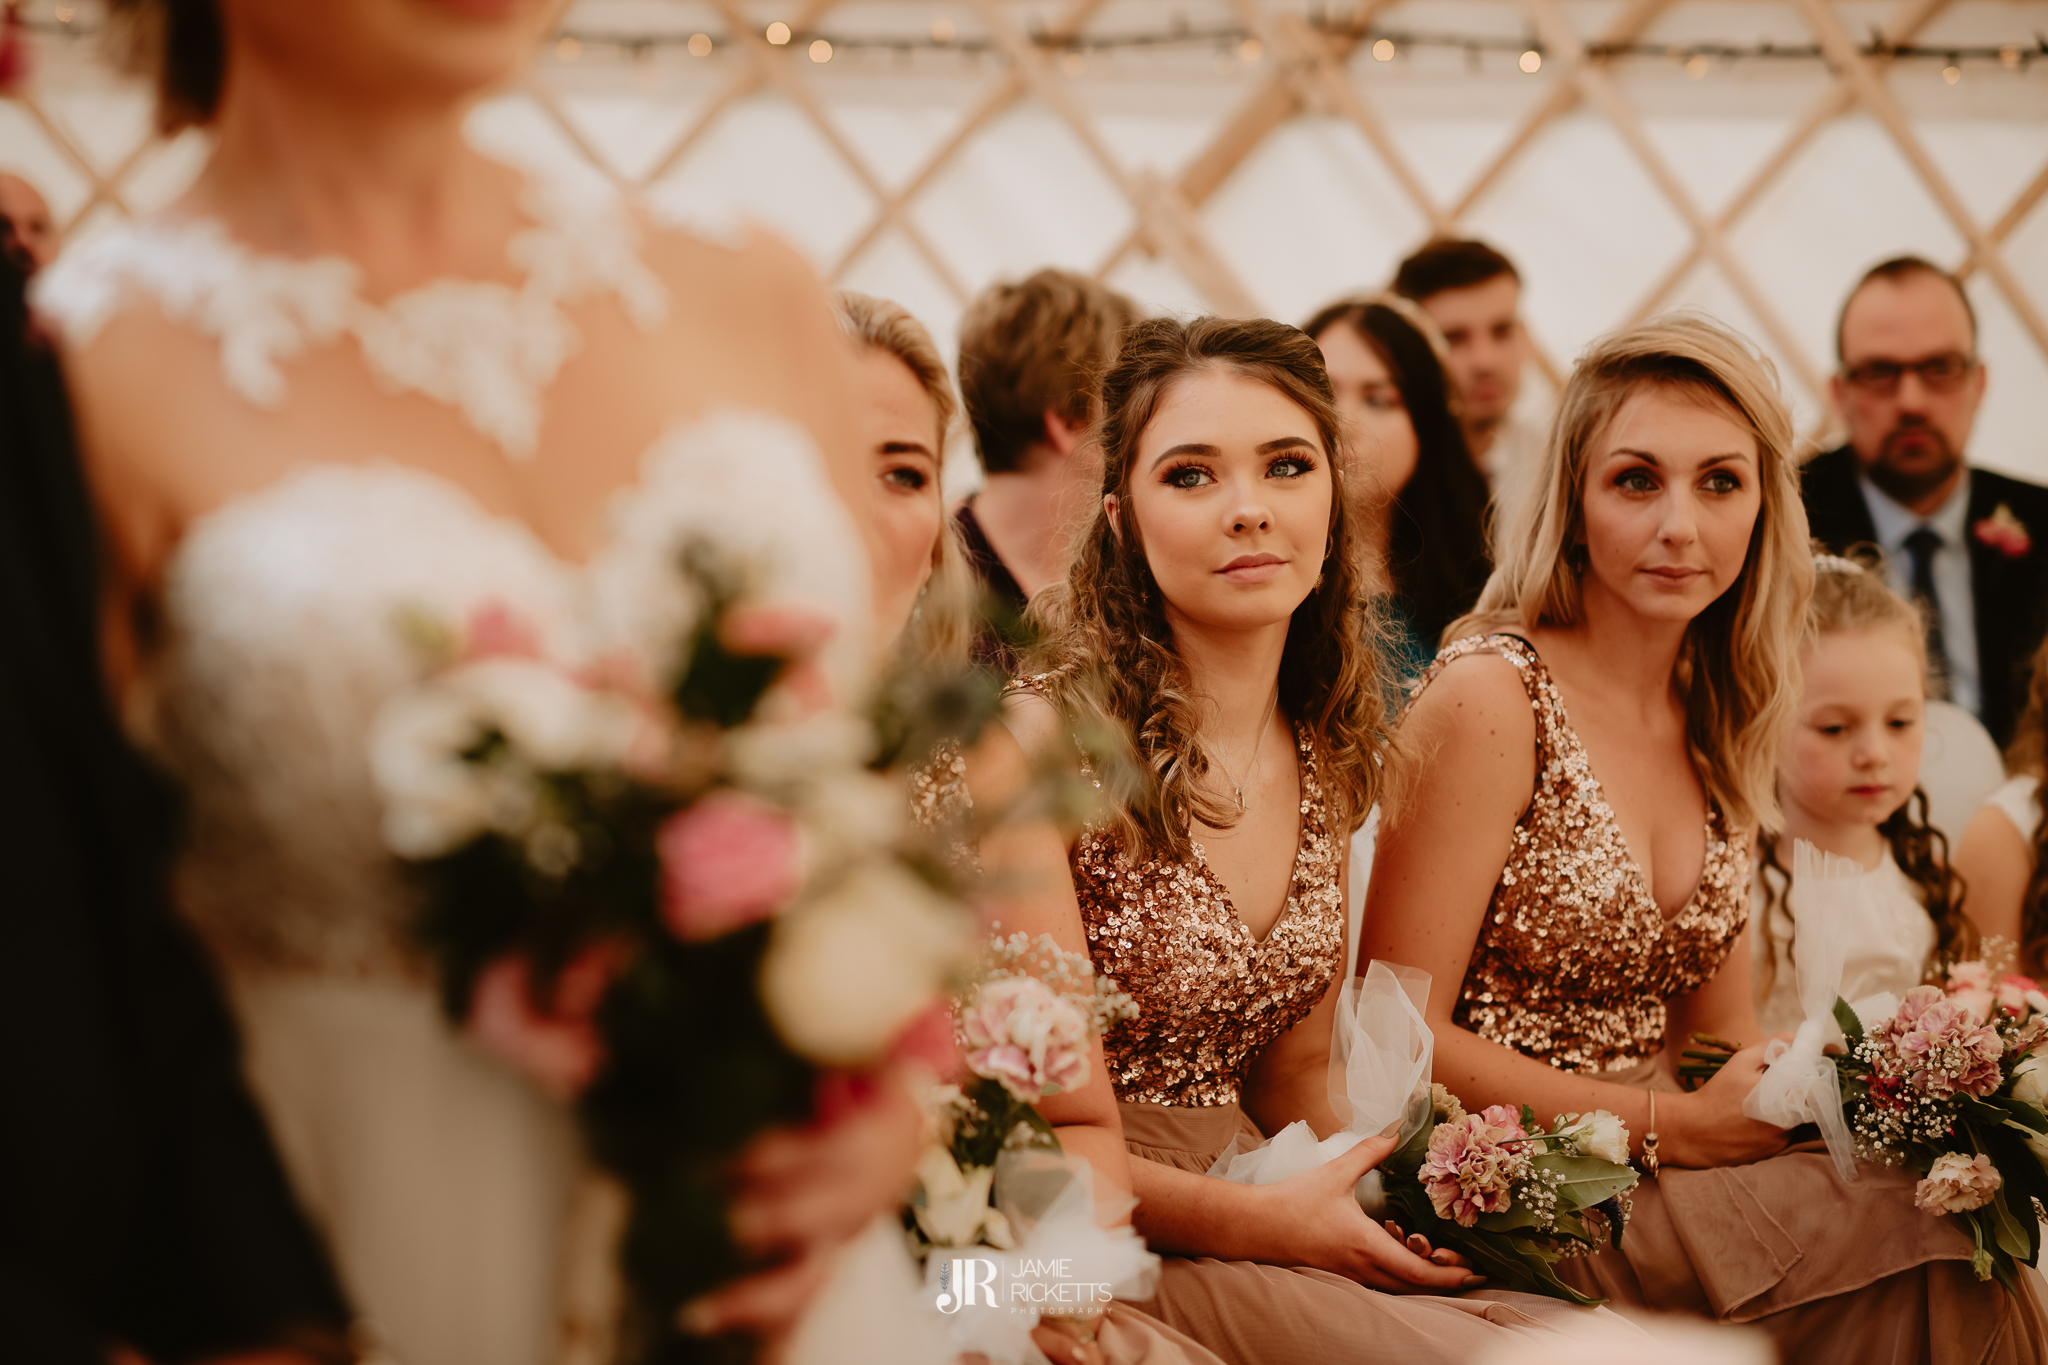 Wroxeter-Hotel-Wedding-Photography-In-Shropshire-By-Shropshire-Wedding-Photographer-Jamie-Ricketts-059.JPG